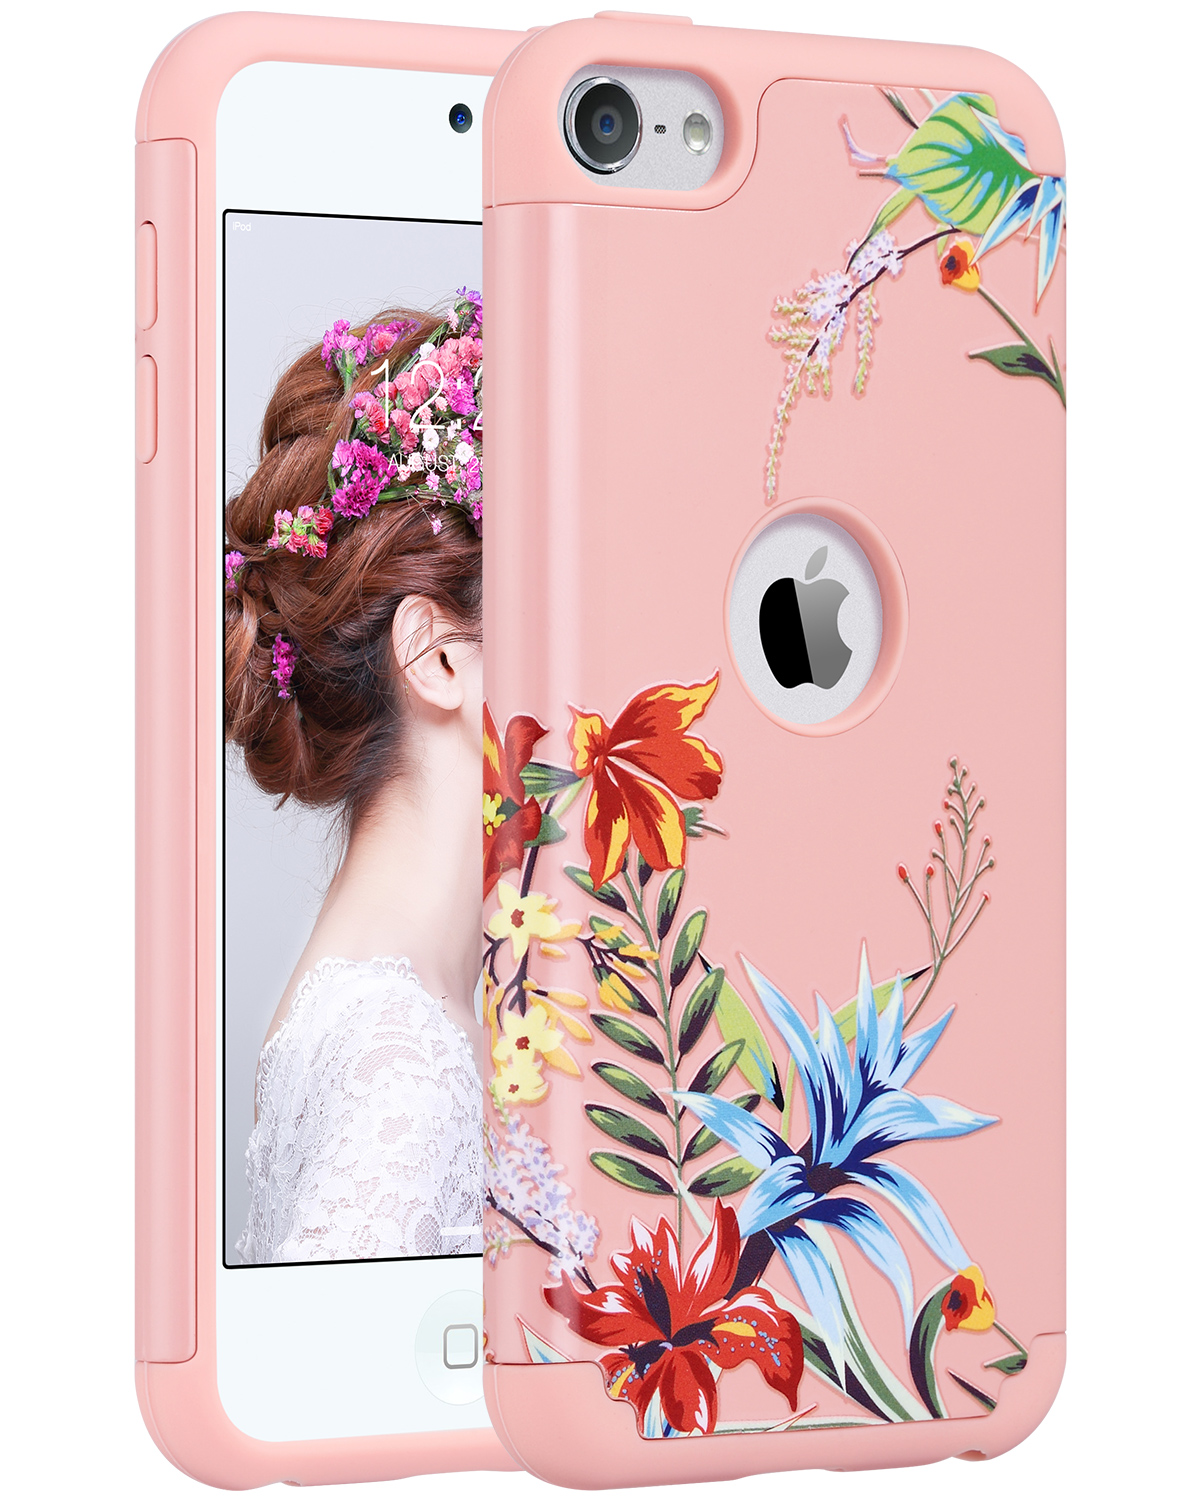 Hybrid-Hard-Protective-Silicon-TPU-Case-for-Apple-iPod-Touch-5-6th-Generation thumbnail 75